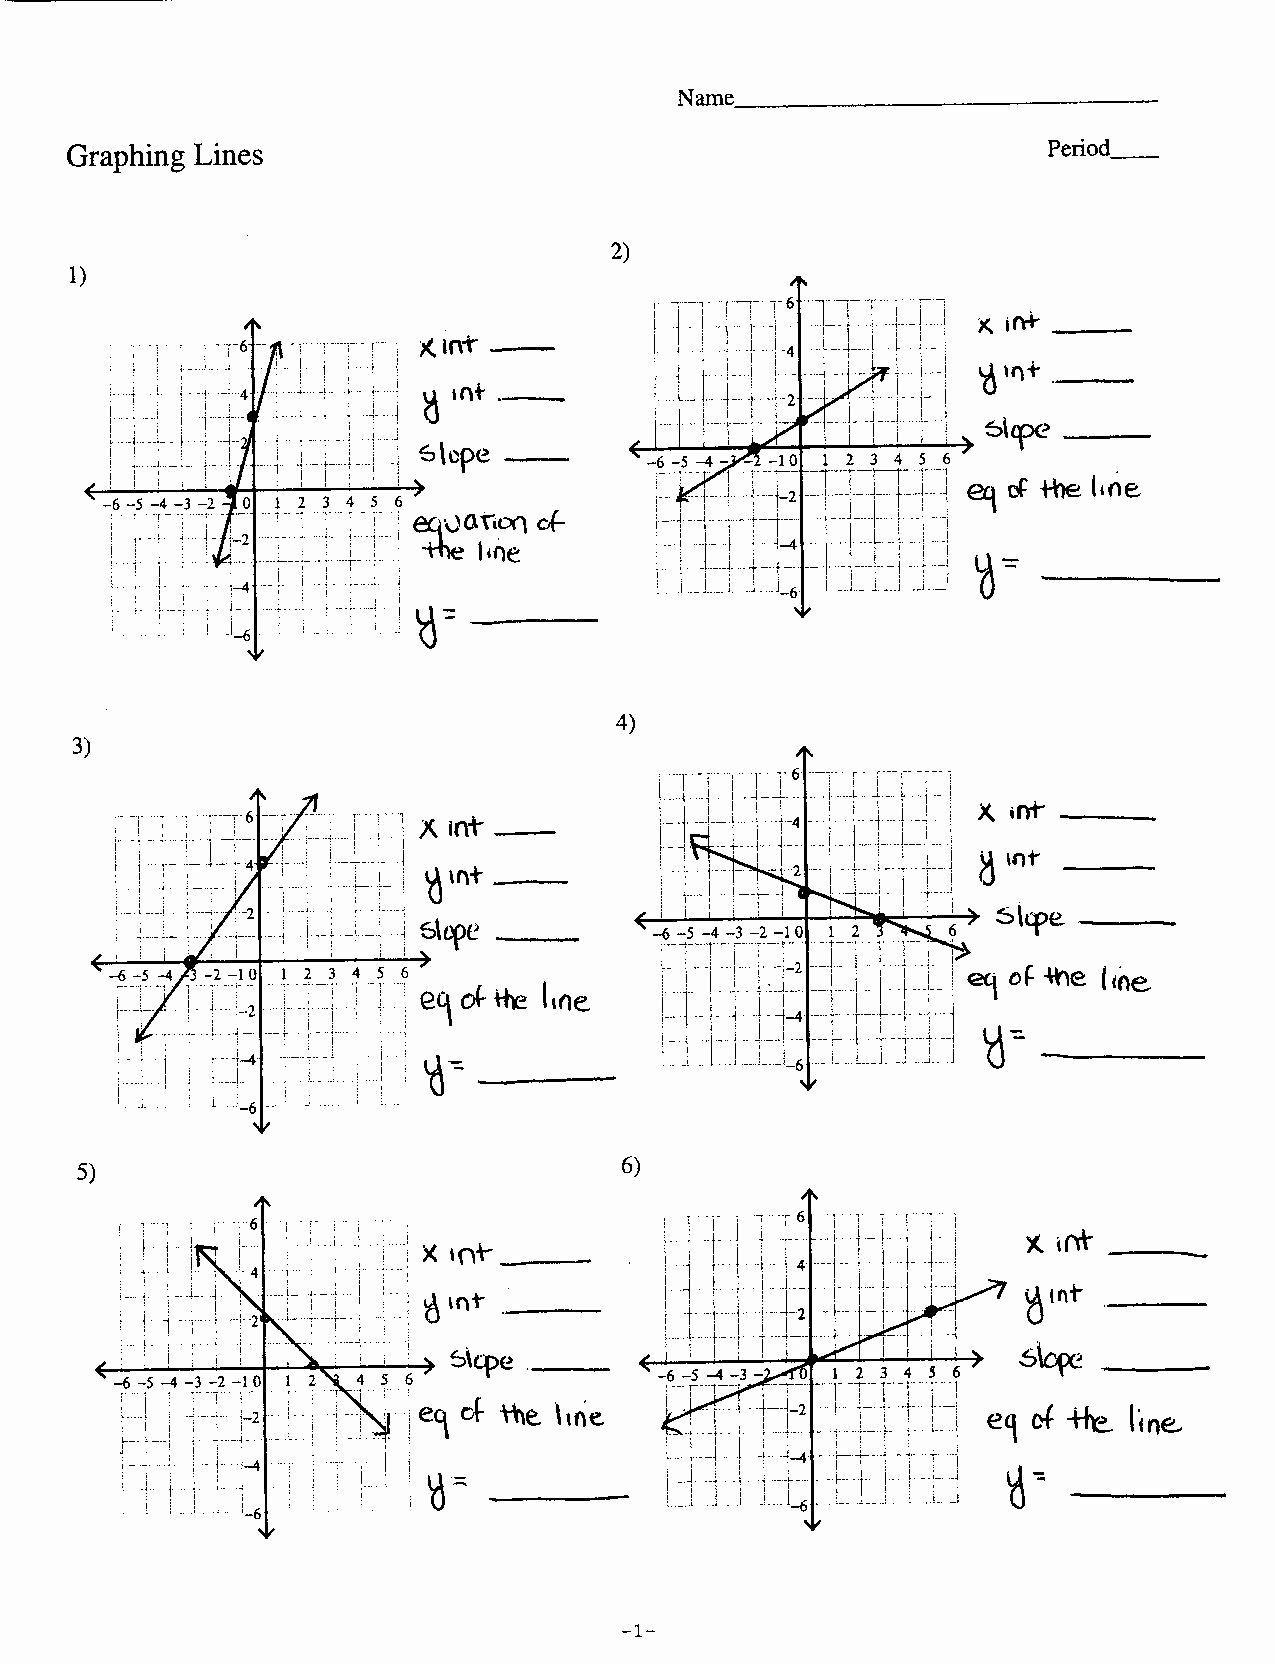 Graphing Linear Functions Worksheet Pdf Best Of 57 Linear Equations Worksheet Pdf Math Worksheets Slope